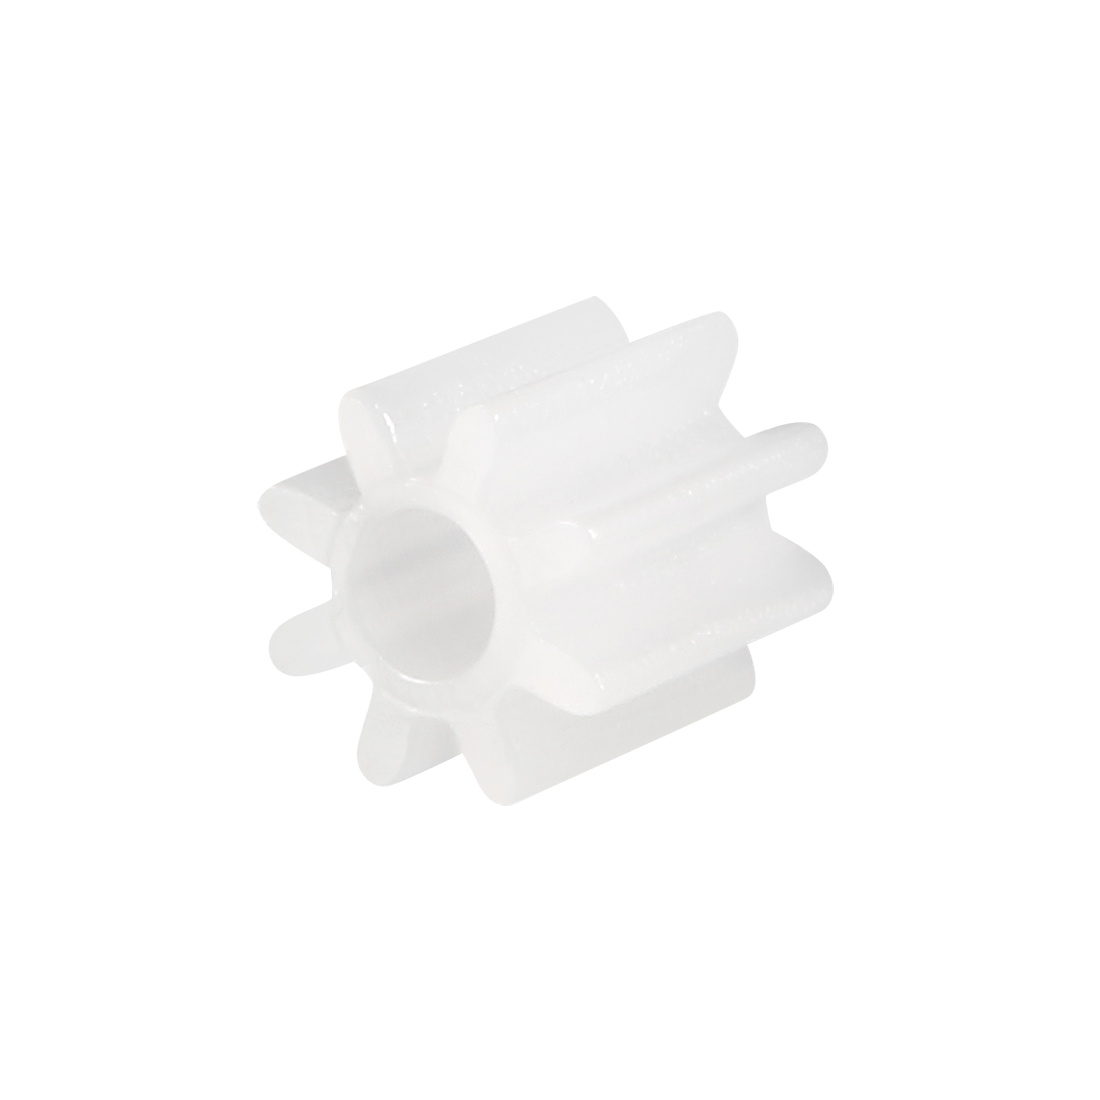 Uxcell 30Pcs 082A Plastic Gear Toy Accessories 8 Teeth White For DIY Car Robot Motor